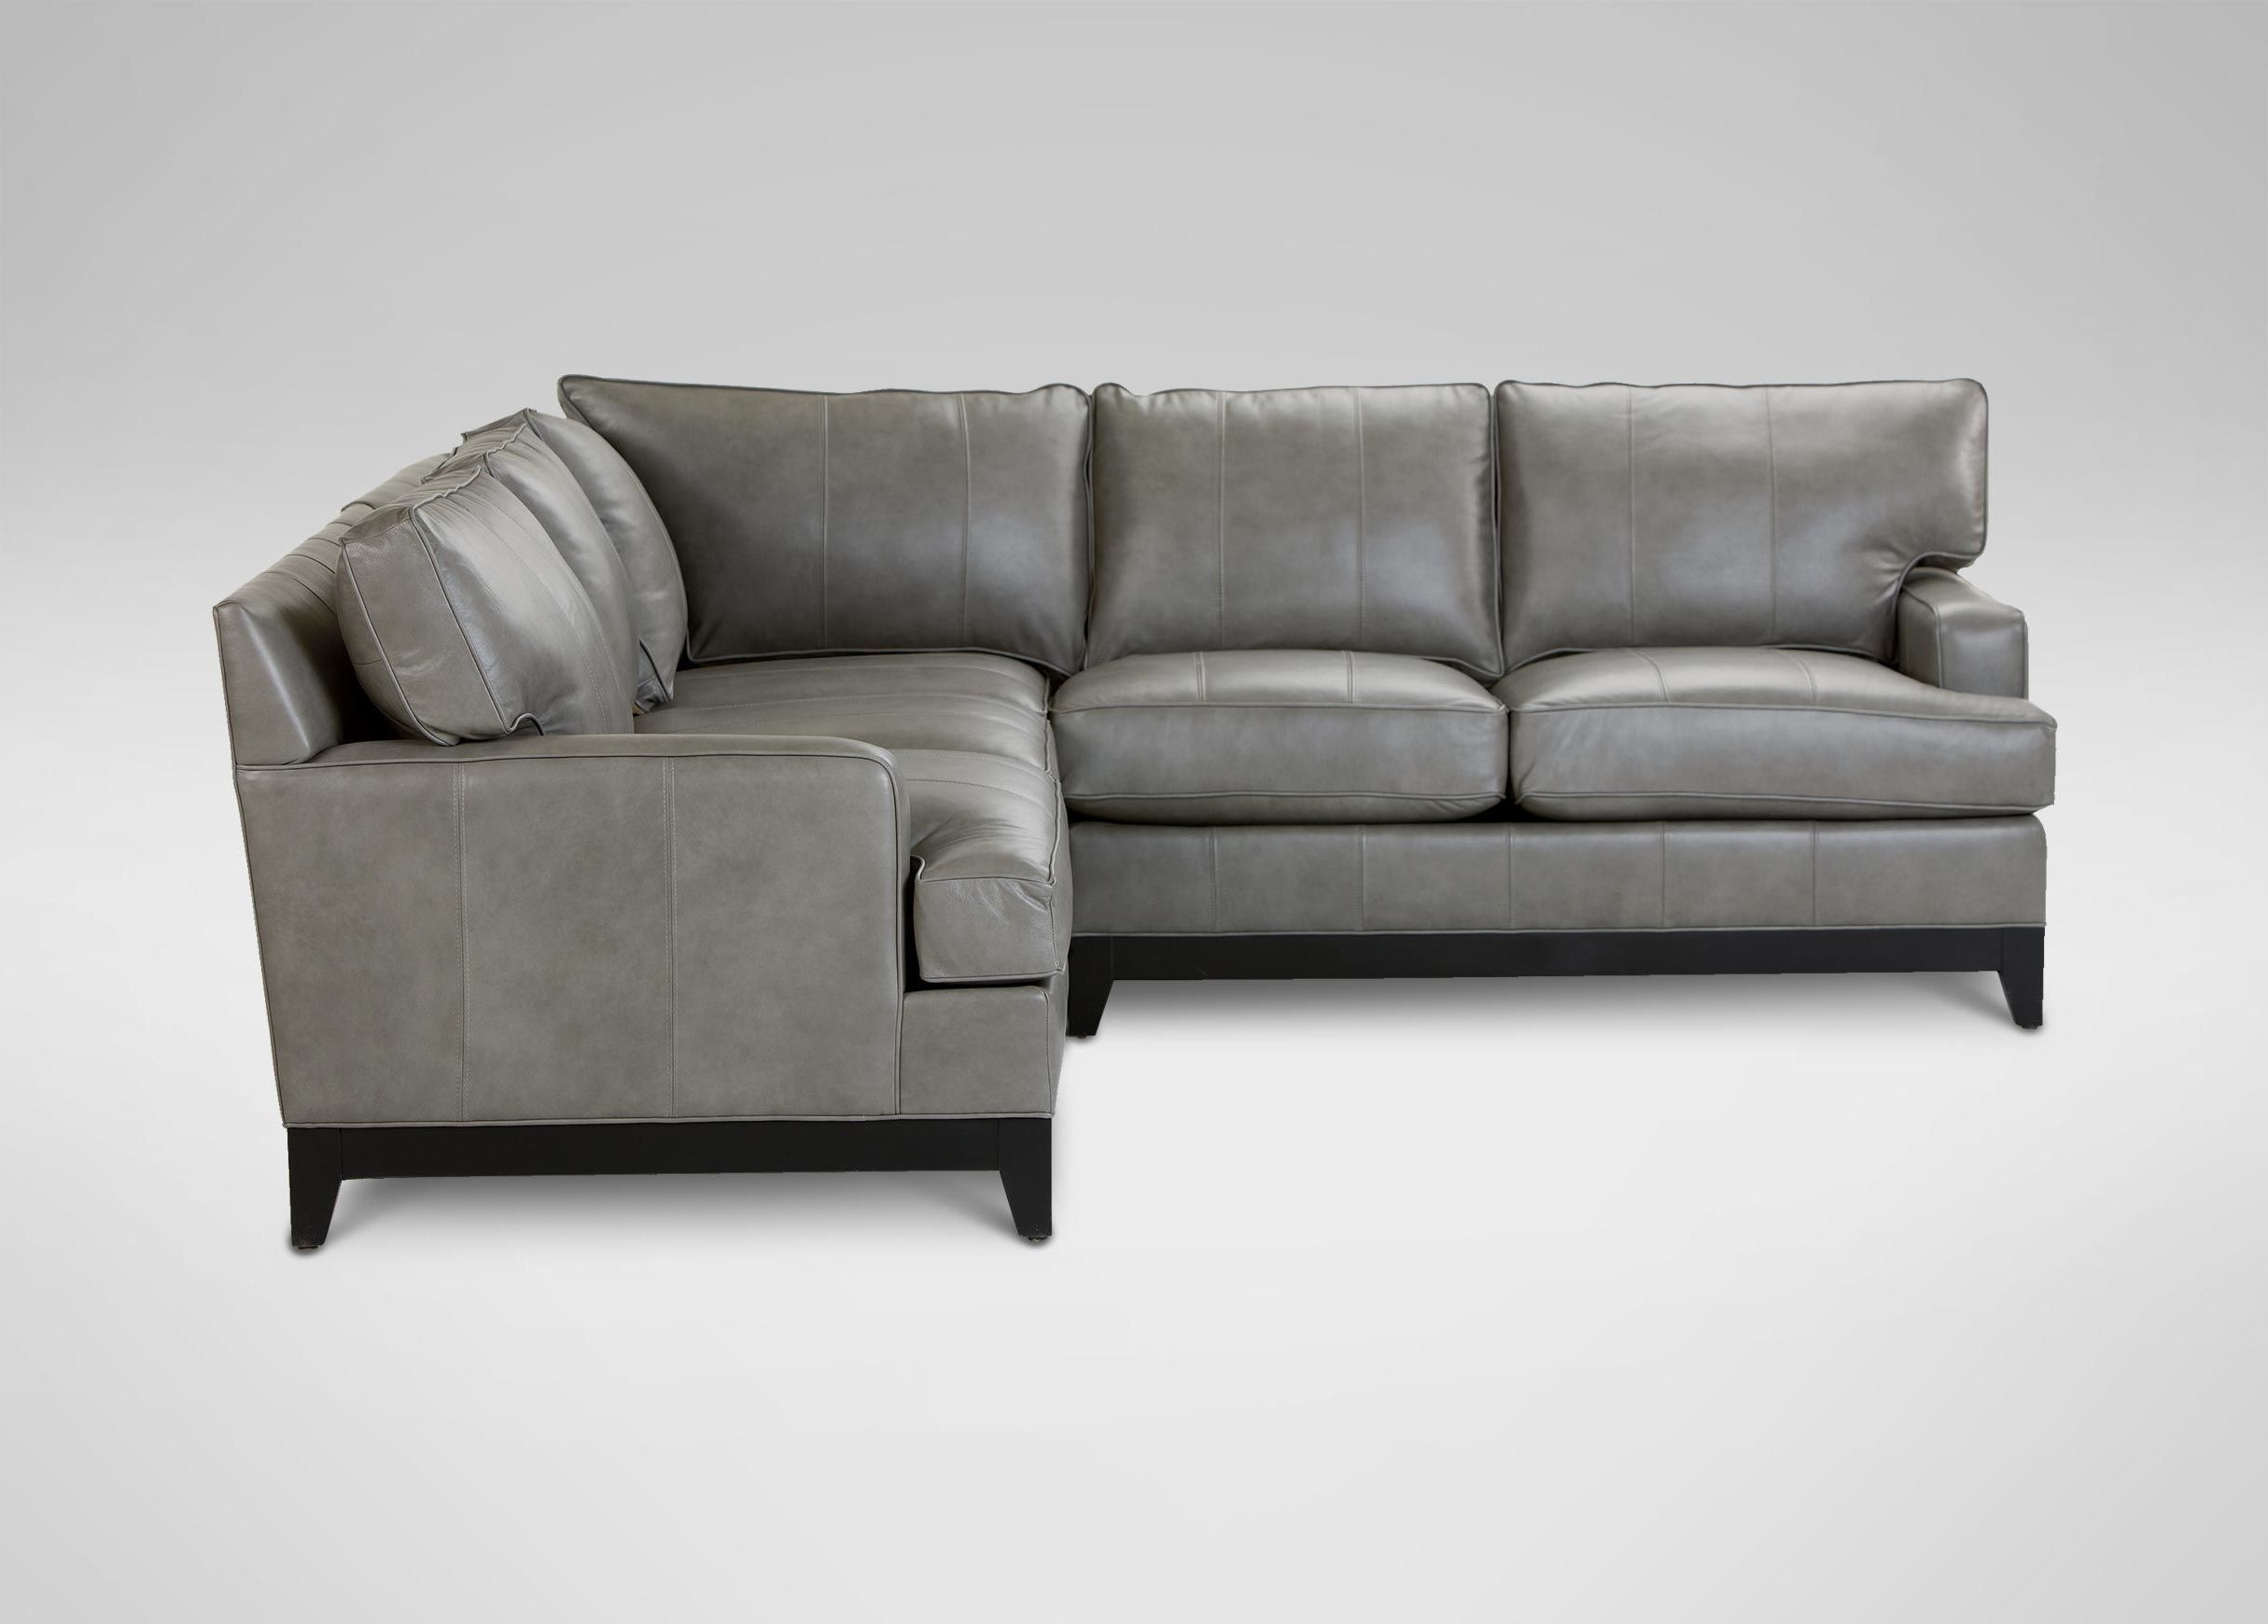 Aifaresidency Throughout Sectional Sofas At Ethan Allen (View 2 of 20)